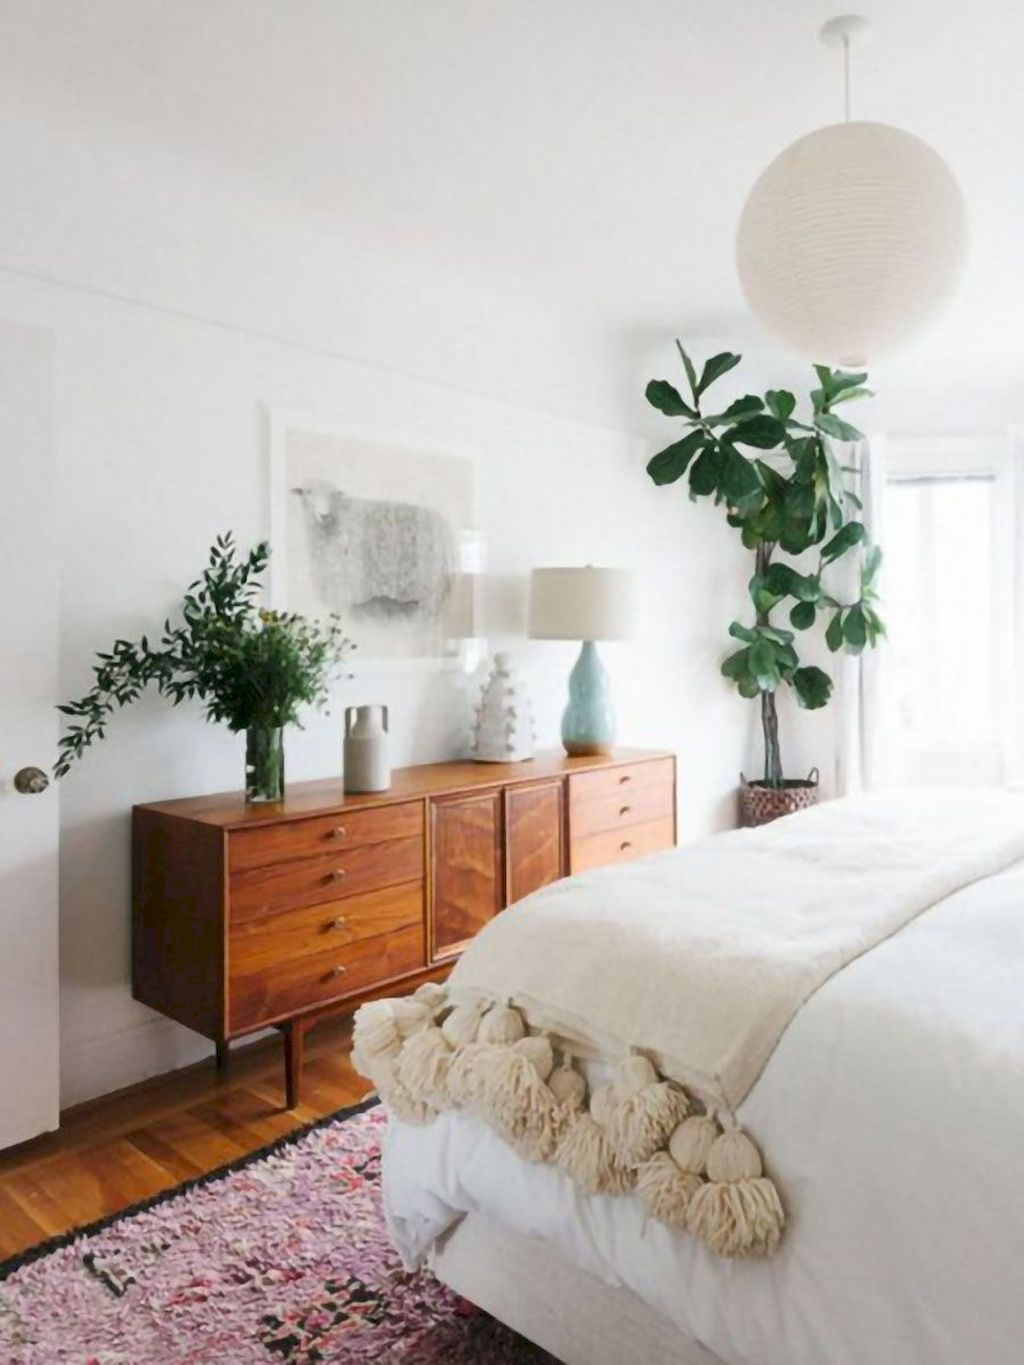 Amazing minimalist bedroom with cheap furniture awesome ideas for simple modern designs also bedrooms home decor and rh pinterest